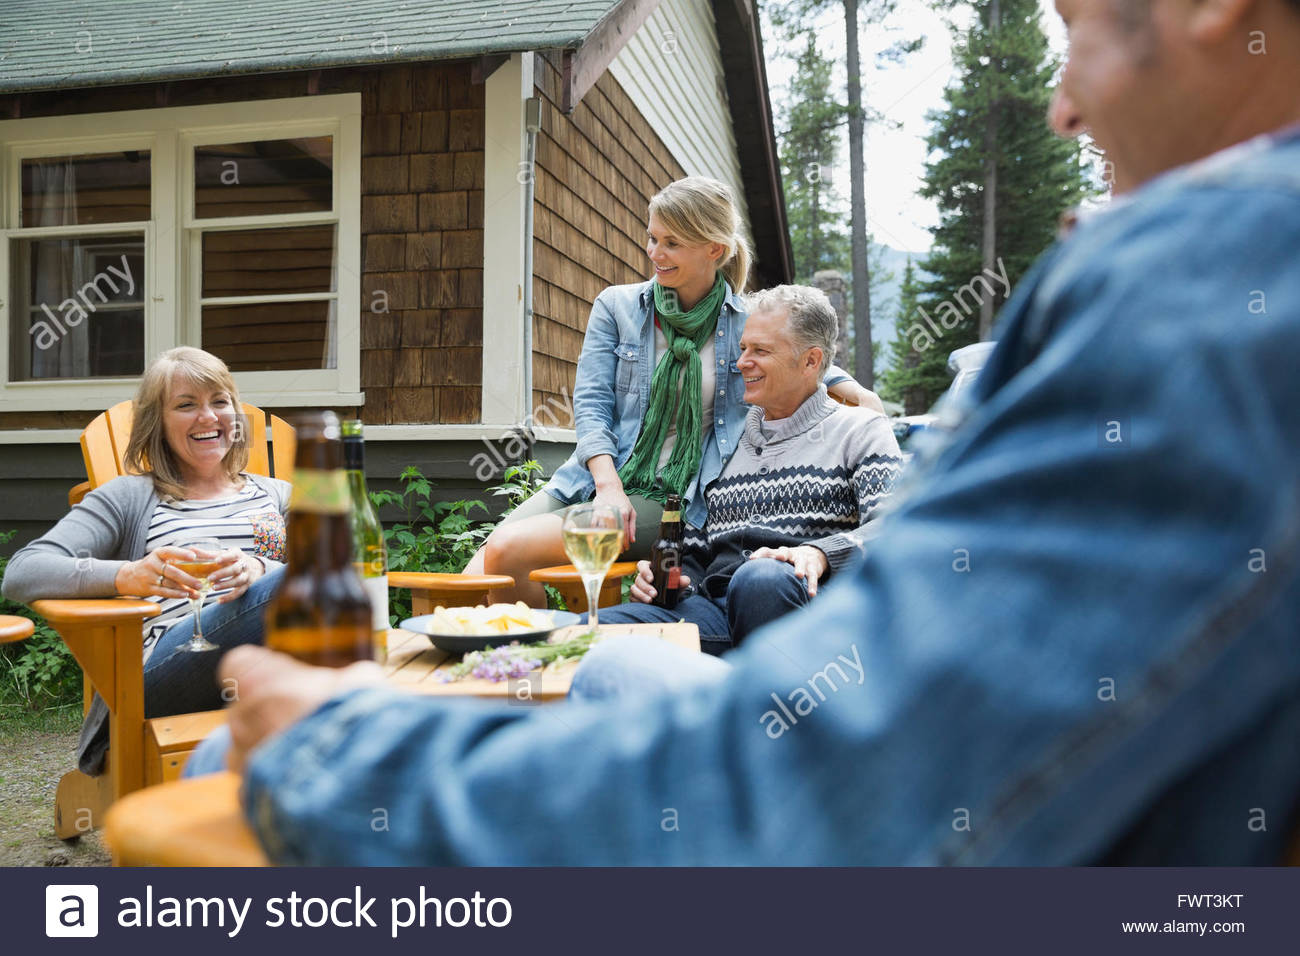 Middle-aged friends socializing outdoors - Stock Image